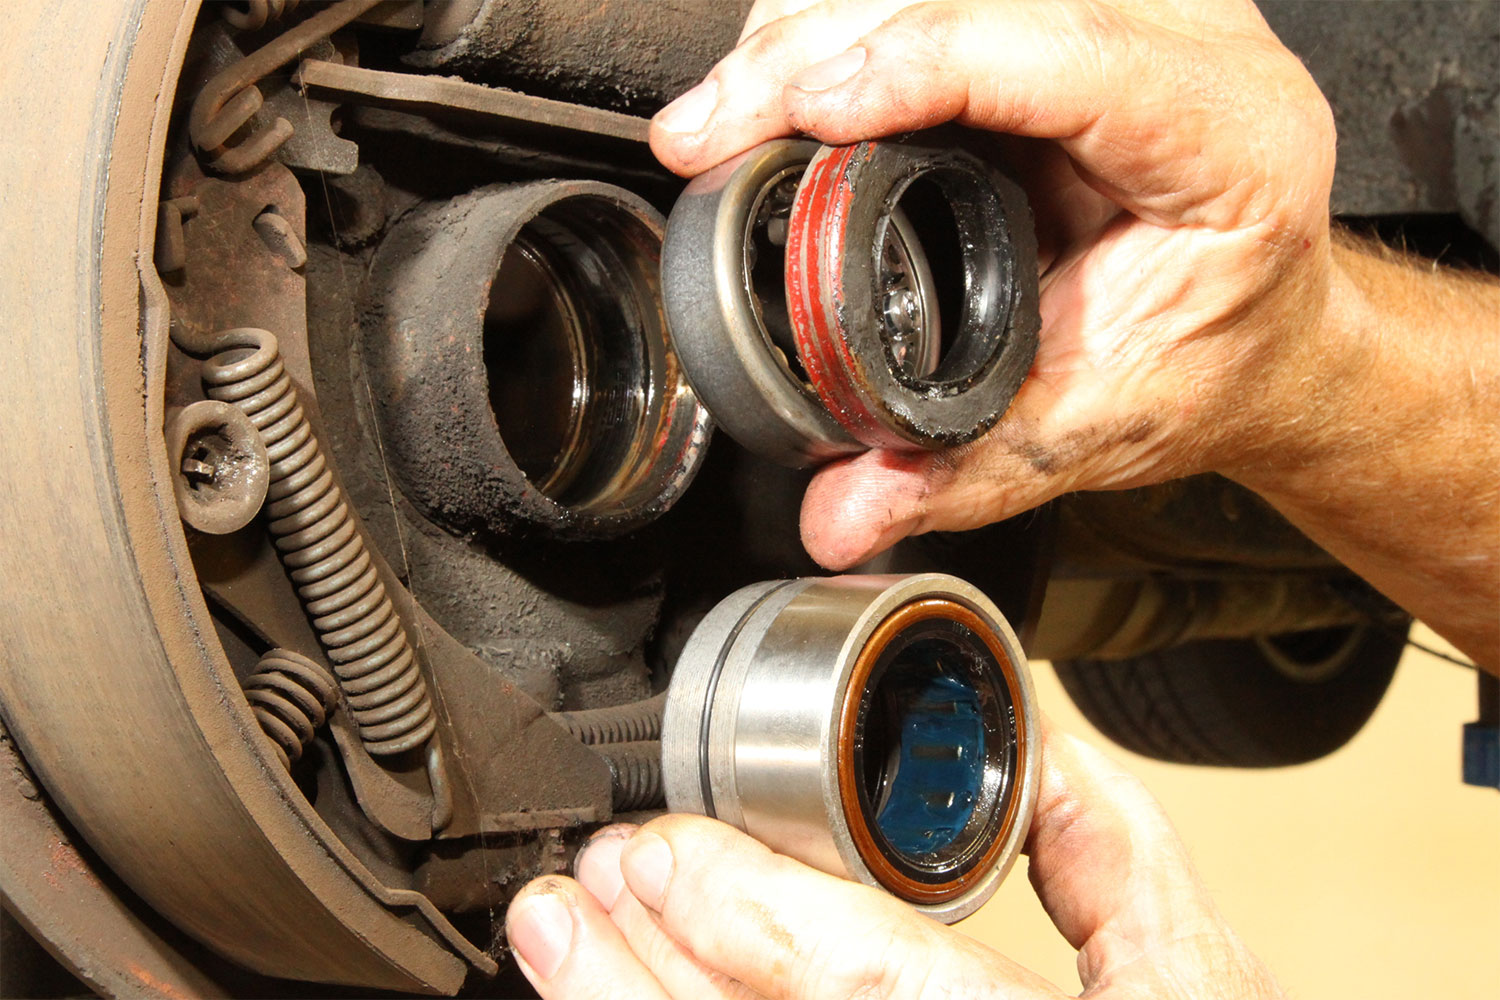 On top are the separate pieces for the OE bearing and seal, at the bottom is the new Timken unit (part No. TRP1563TAV, $27.97 Summit price) which is both the bearing and the seal. Note the locating ring inside the axle tube. This is the surface the bearing must seat against when installing the new unit.